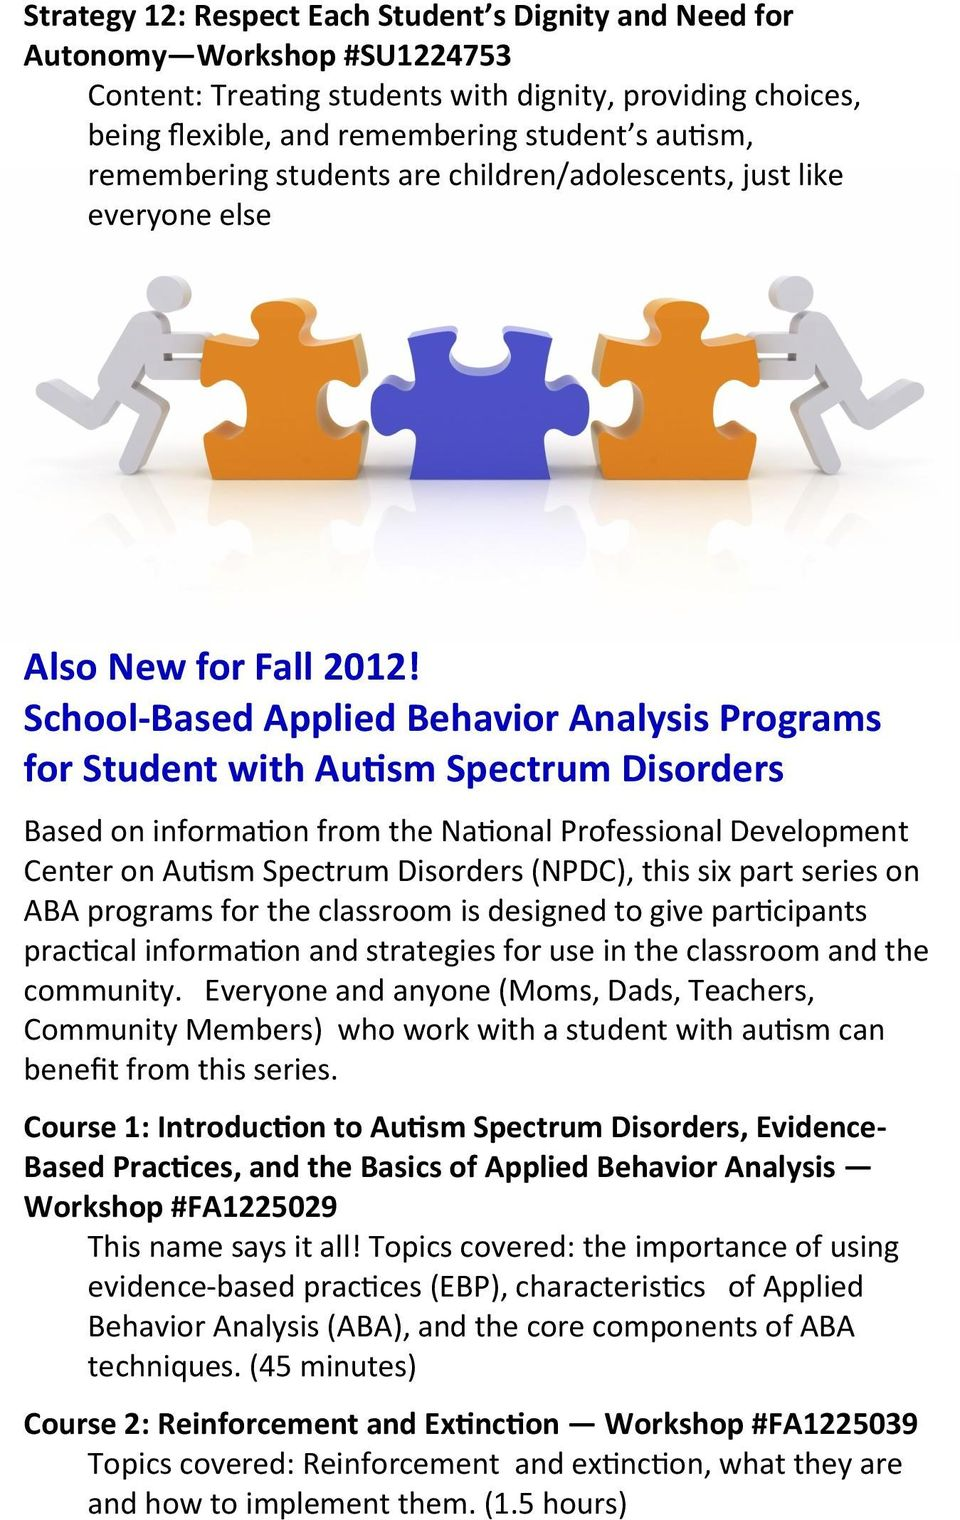 School-Based Applied Behavior Analysis Programs for Student with Autism Spectrum Disorders Based on information from the National Professional Development Center on Autism Spectrum Disorders (NPDC),